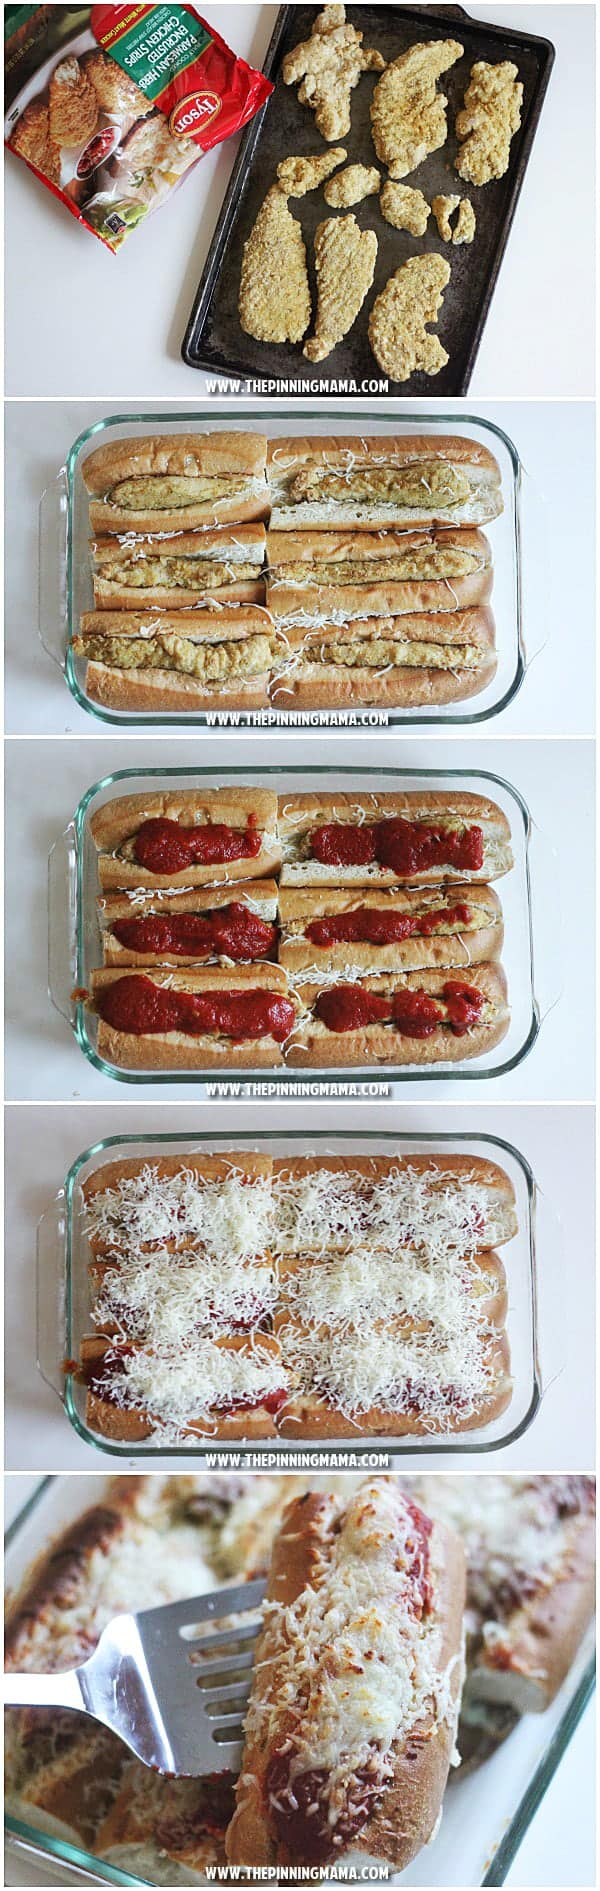 CHICKEN PARM SUB BAKE recipe- Such a great idea for a party! Just minutes of prep for enough to feed a crowd! I think this is perfect for our Super Bowl Party!